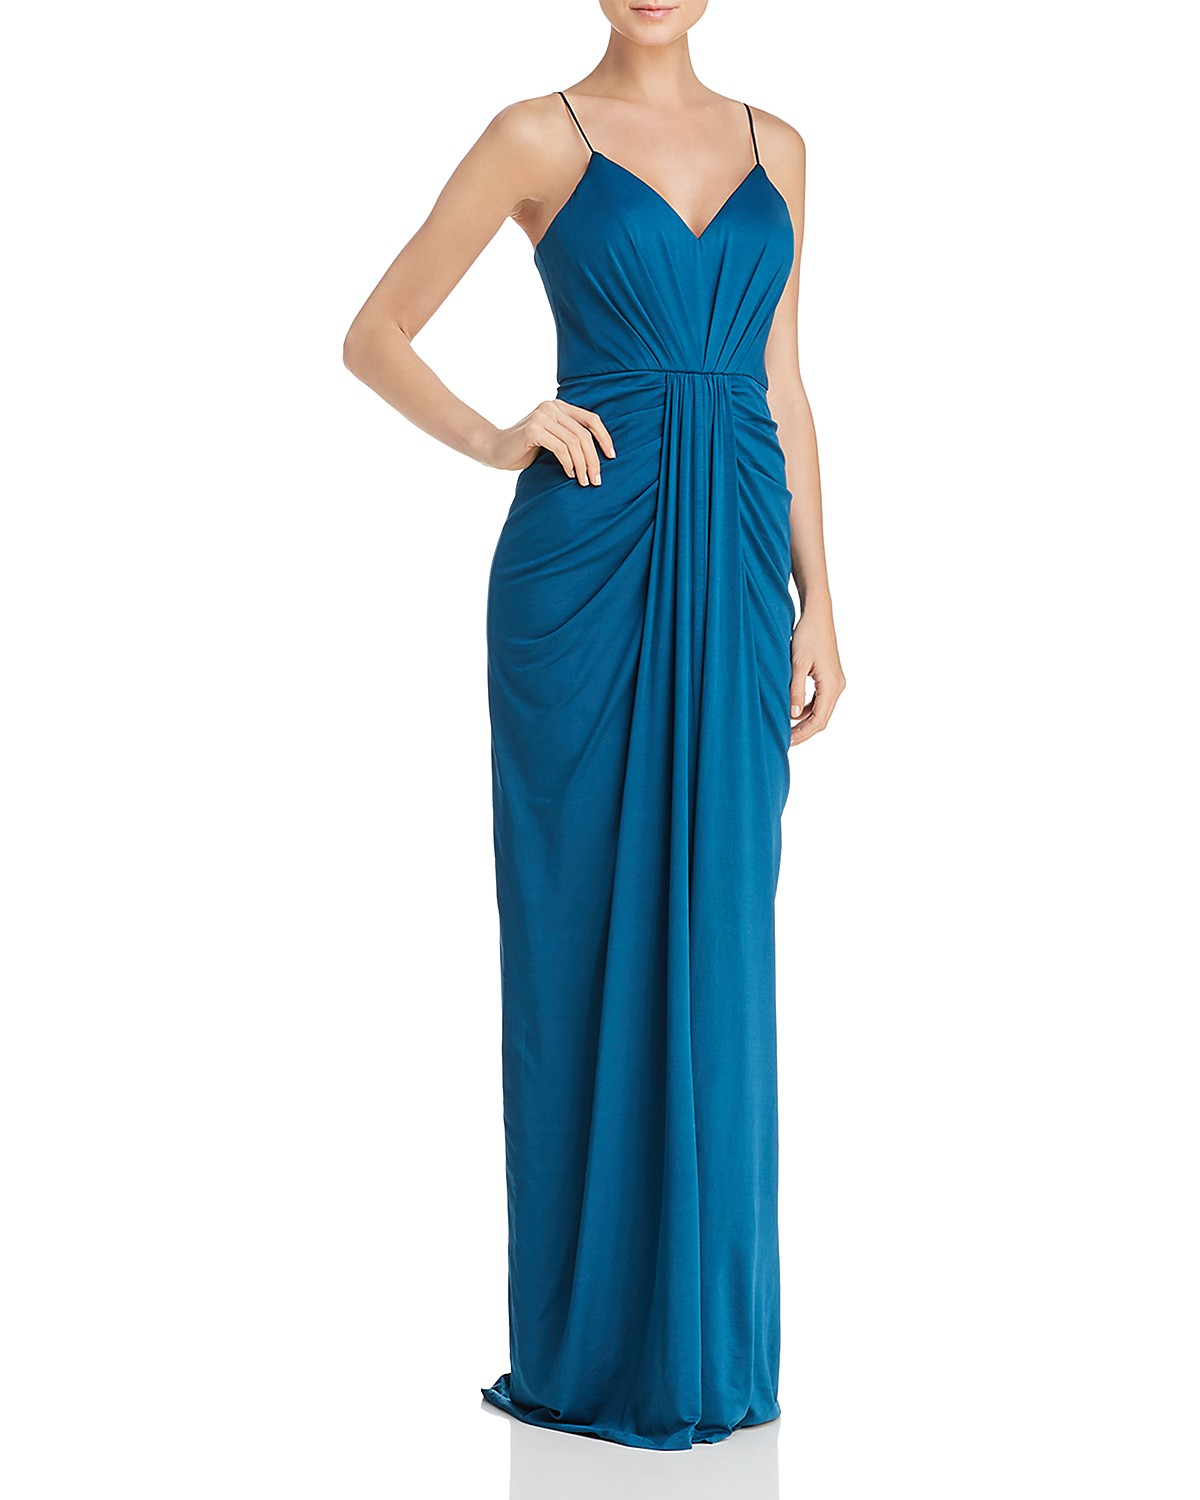 Bariano V-Neck Draped Gown - 100% Exclusive   Bloomingdale\'s